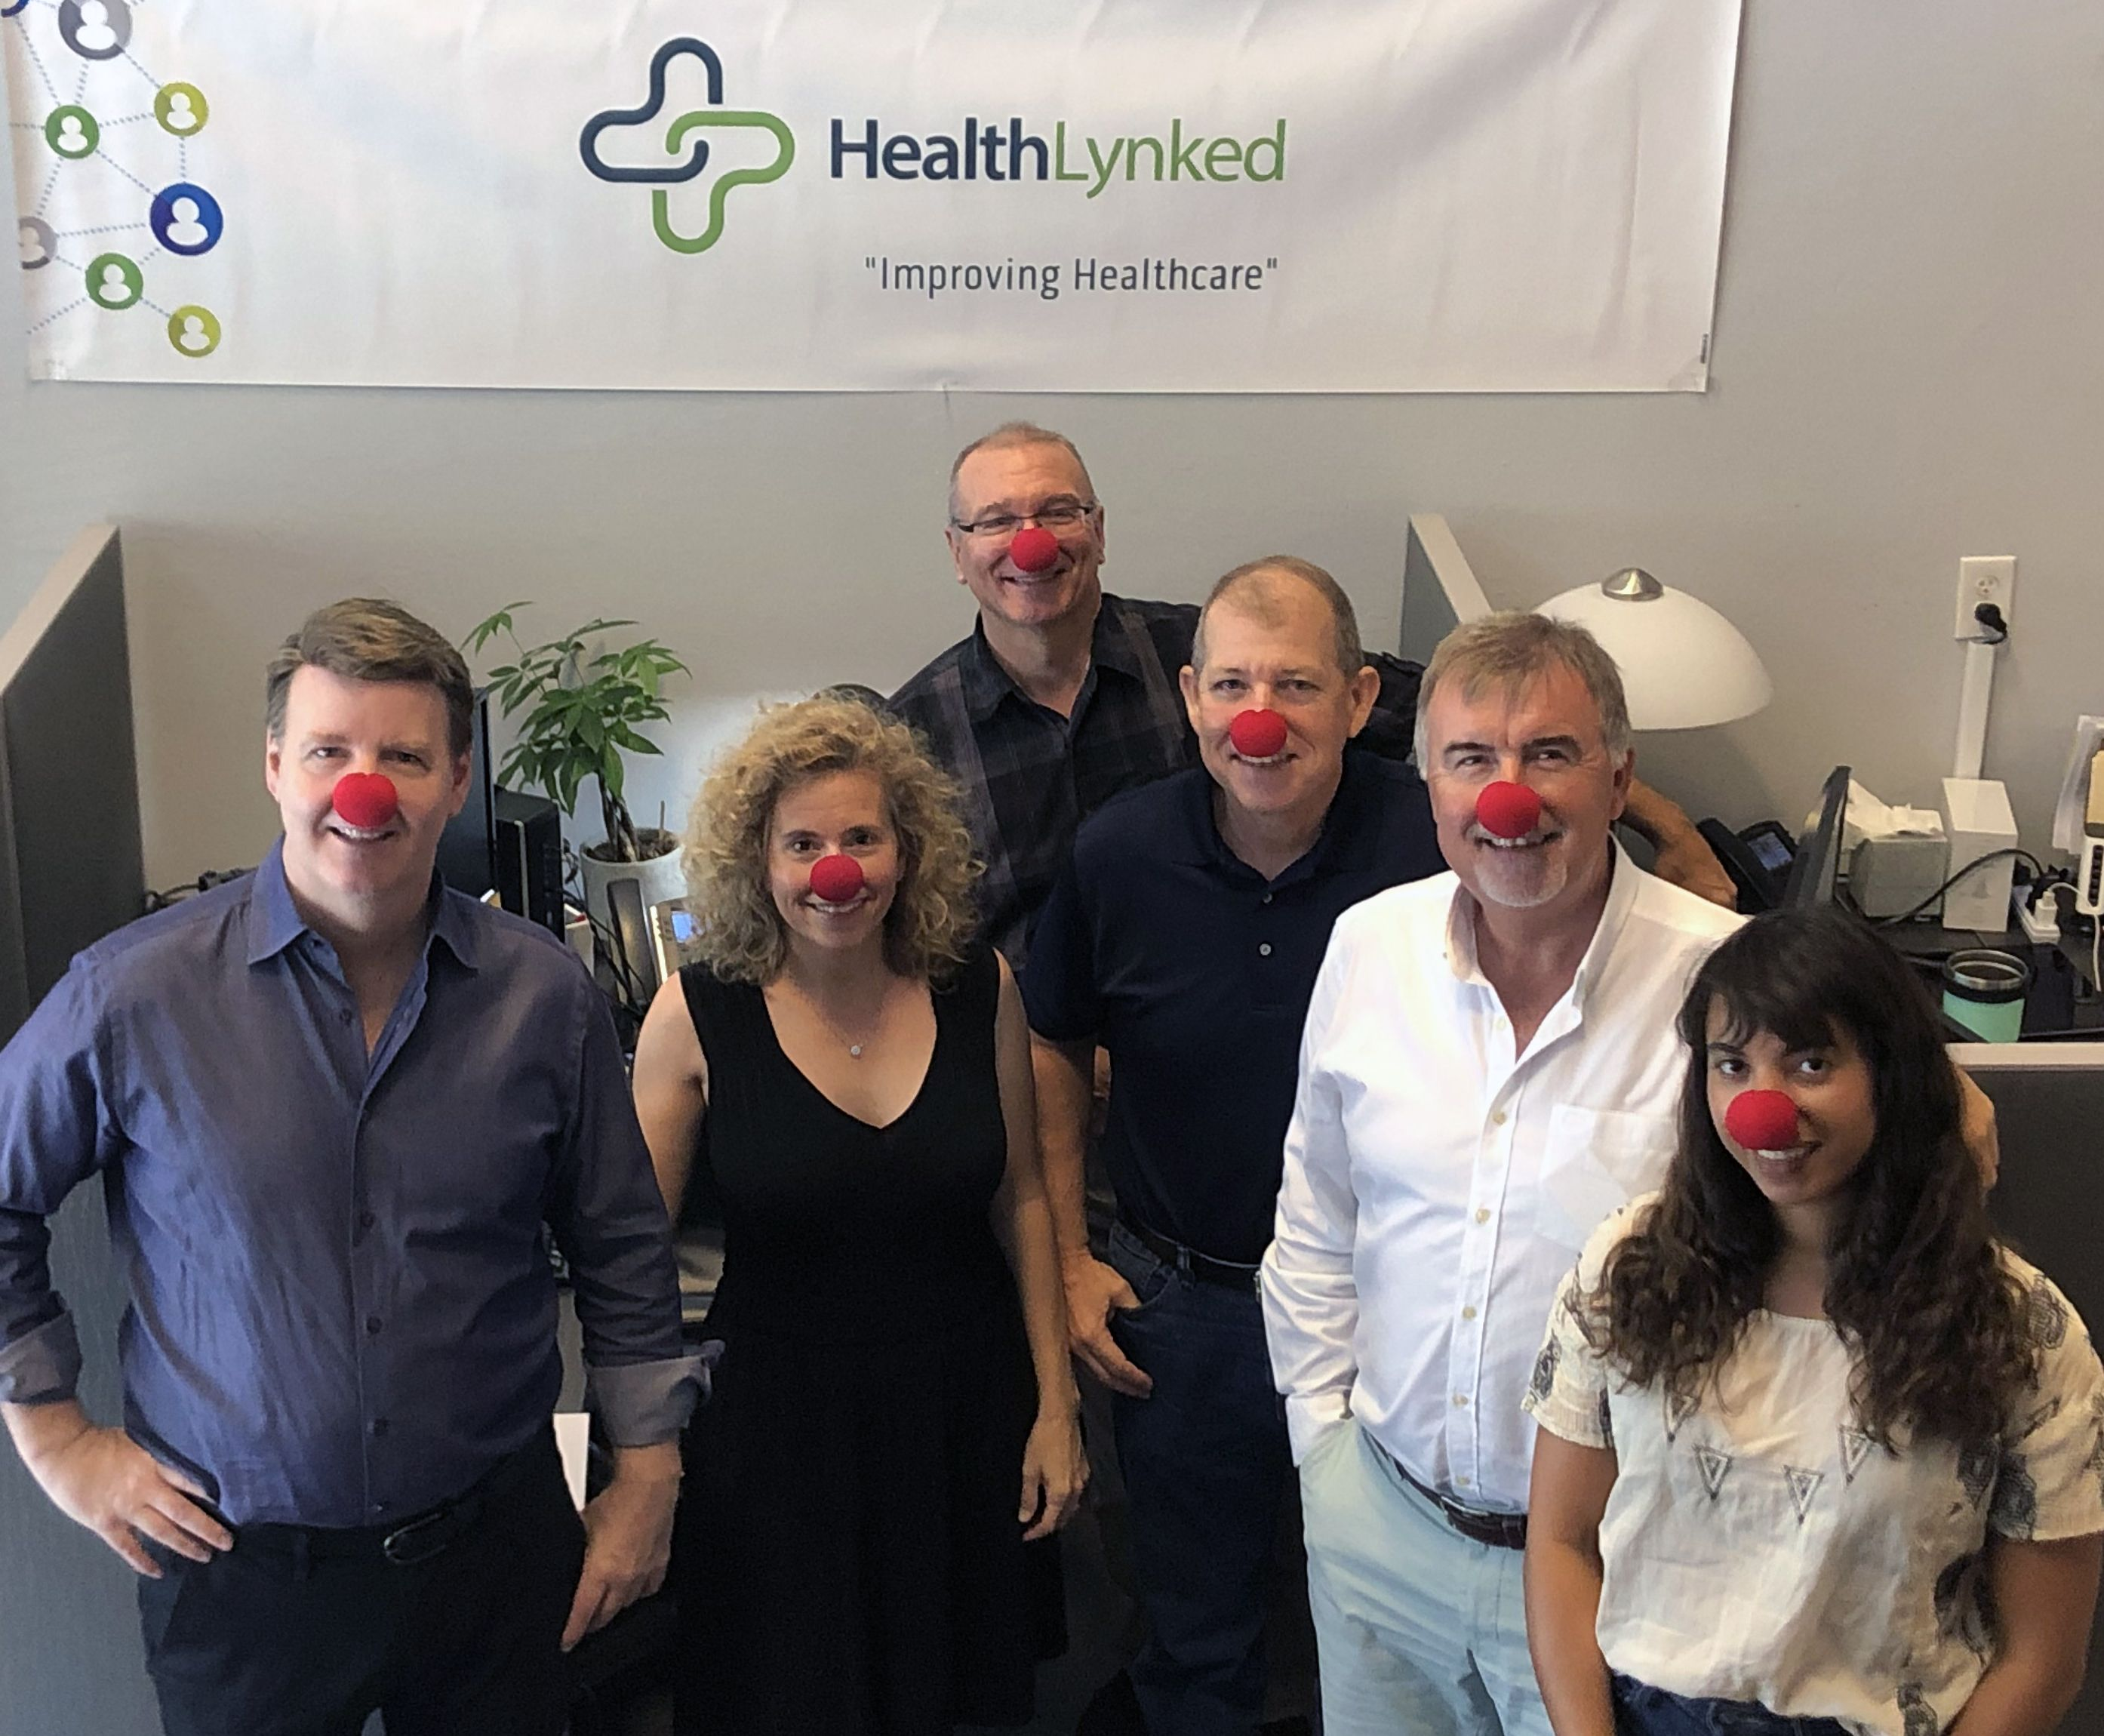 Red Nose Day Poverty children, Doctor medical, Red nose day